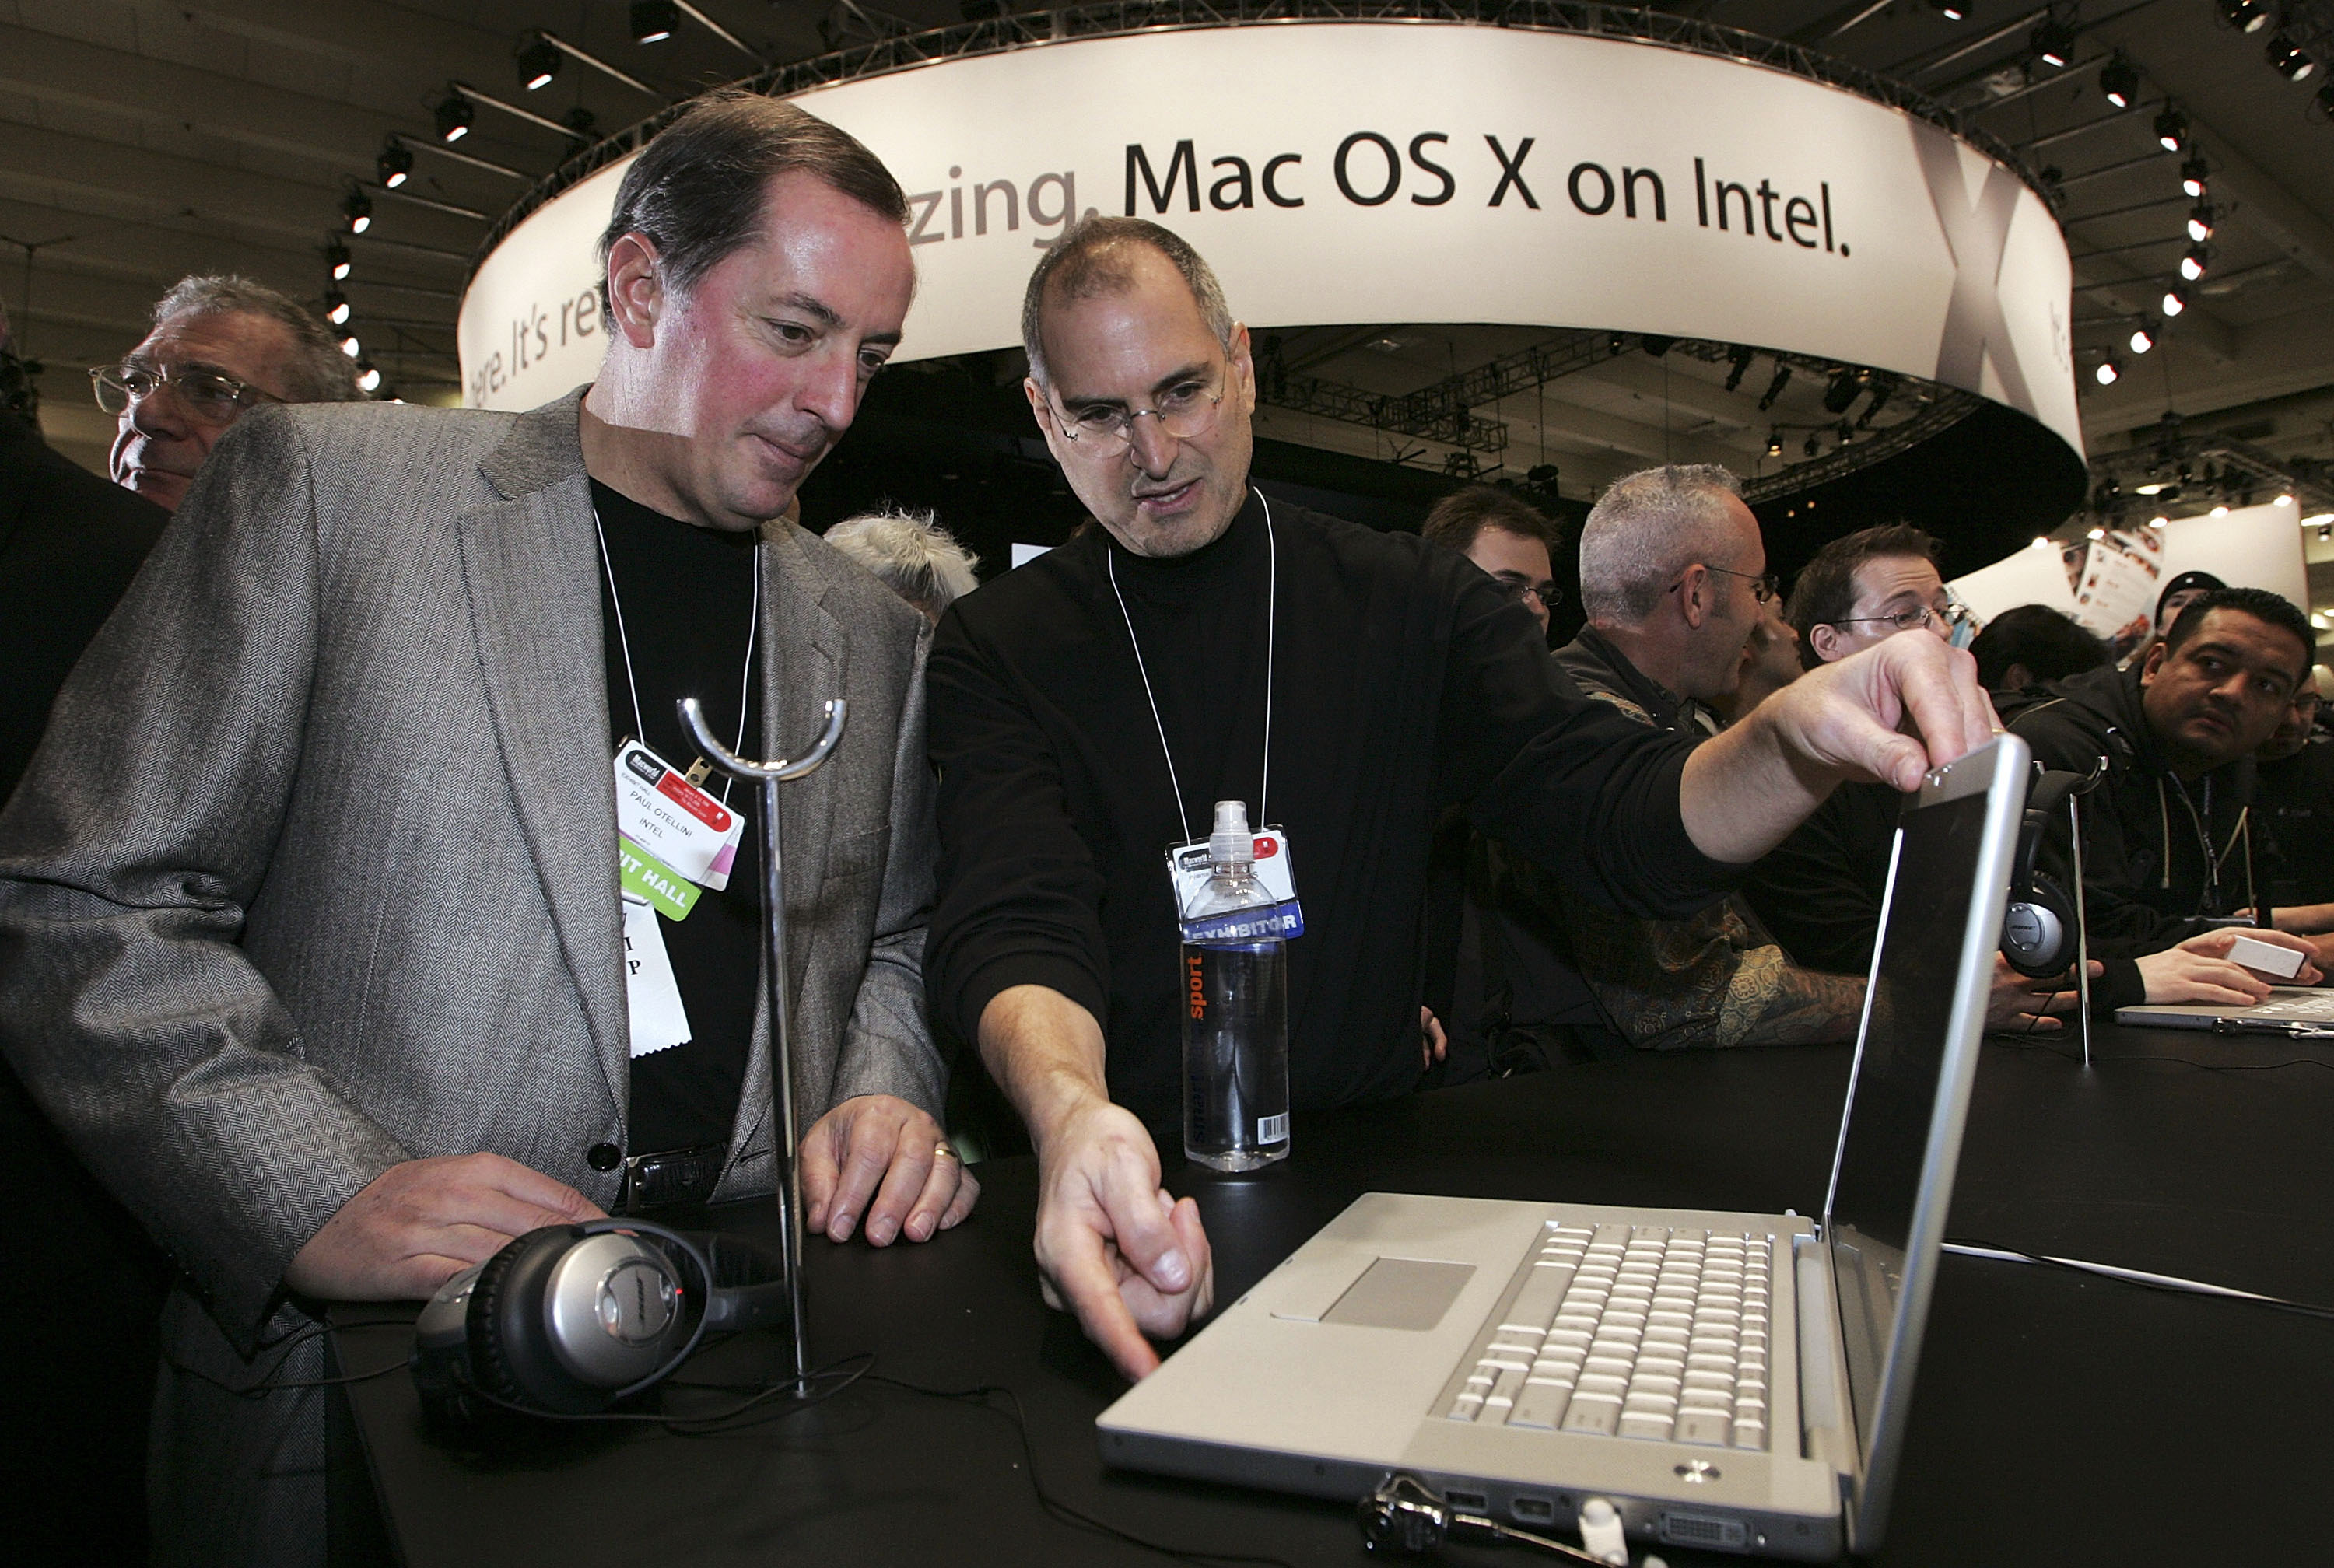 2006 Macbook Pro was Apple's first computer to use Intel Core processors, replacing PowerBook computers. The Macbook Pro line is Apple's latest laptop collection.